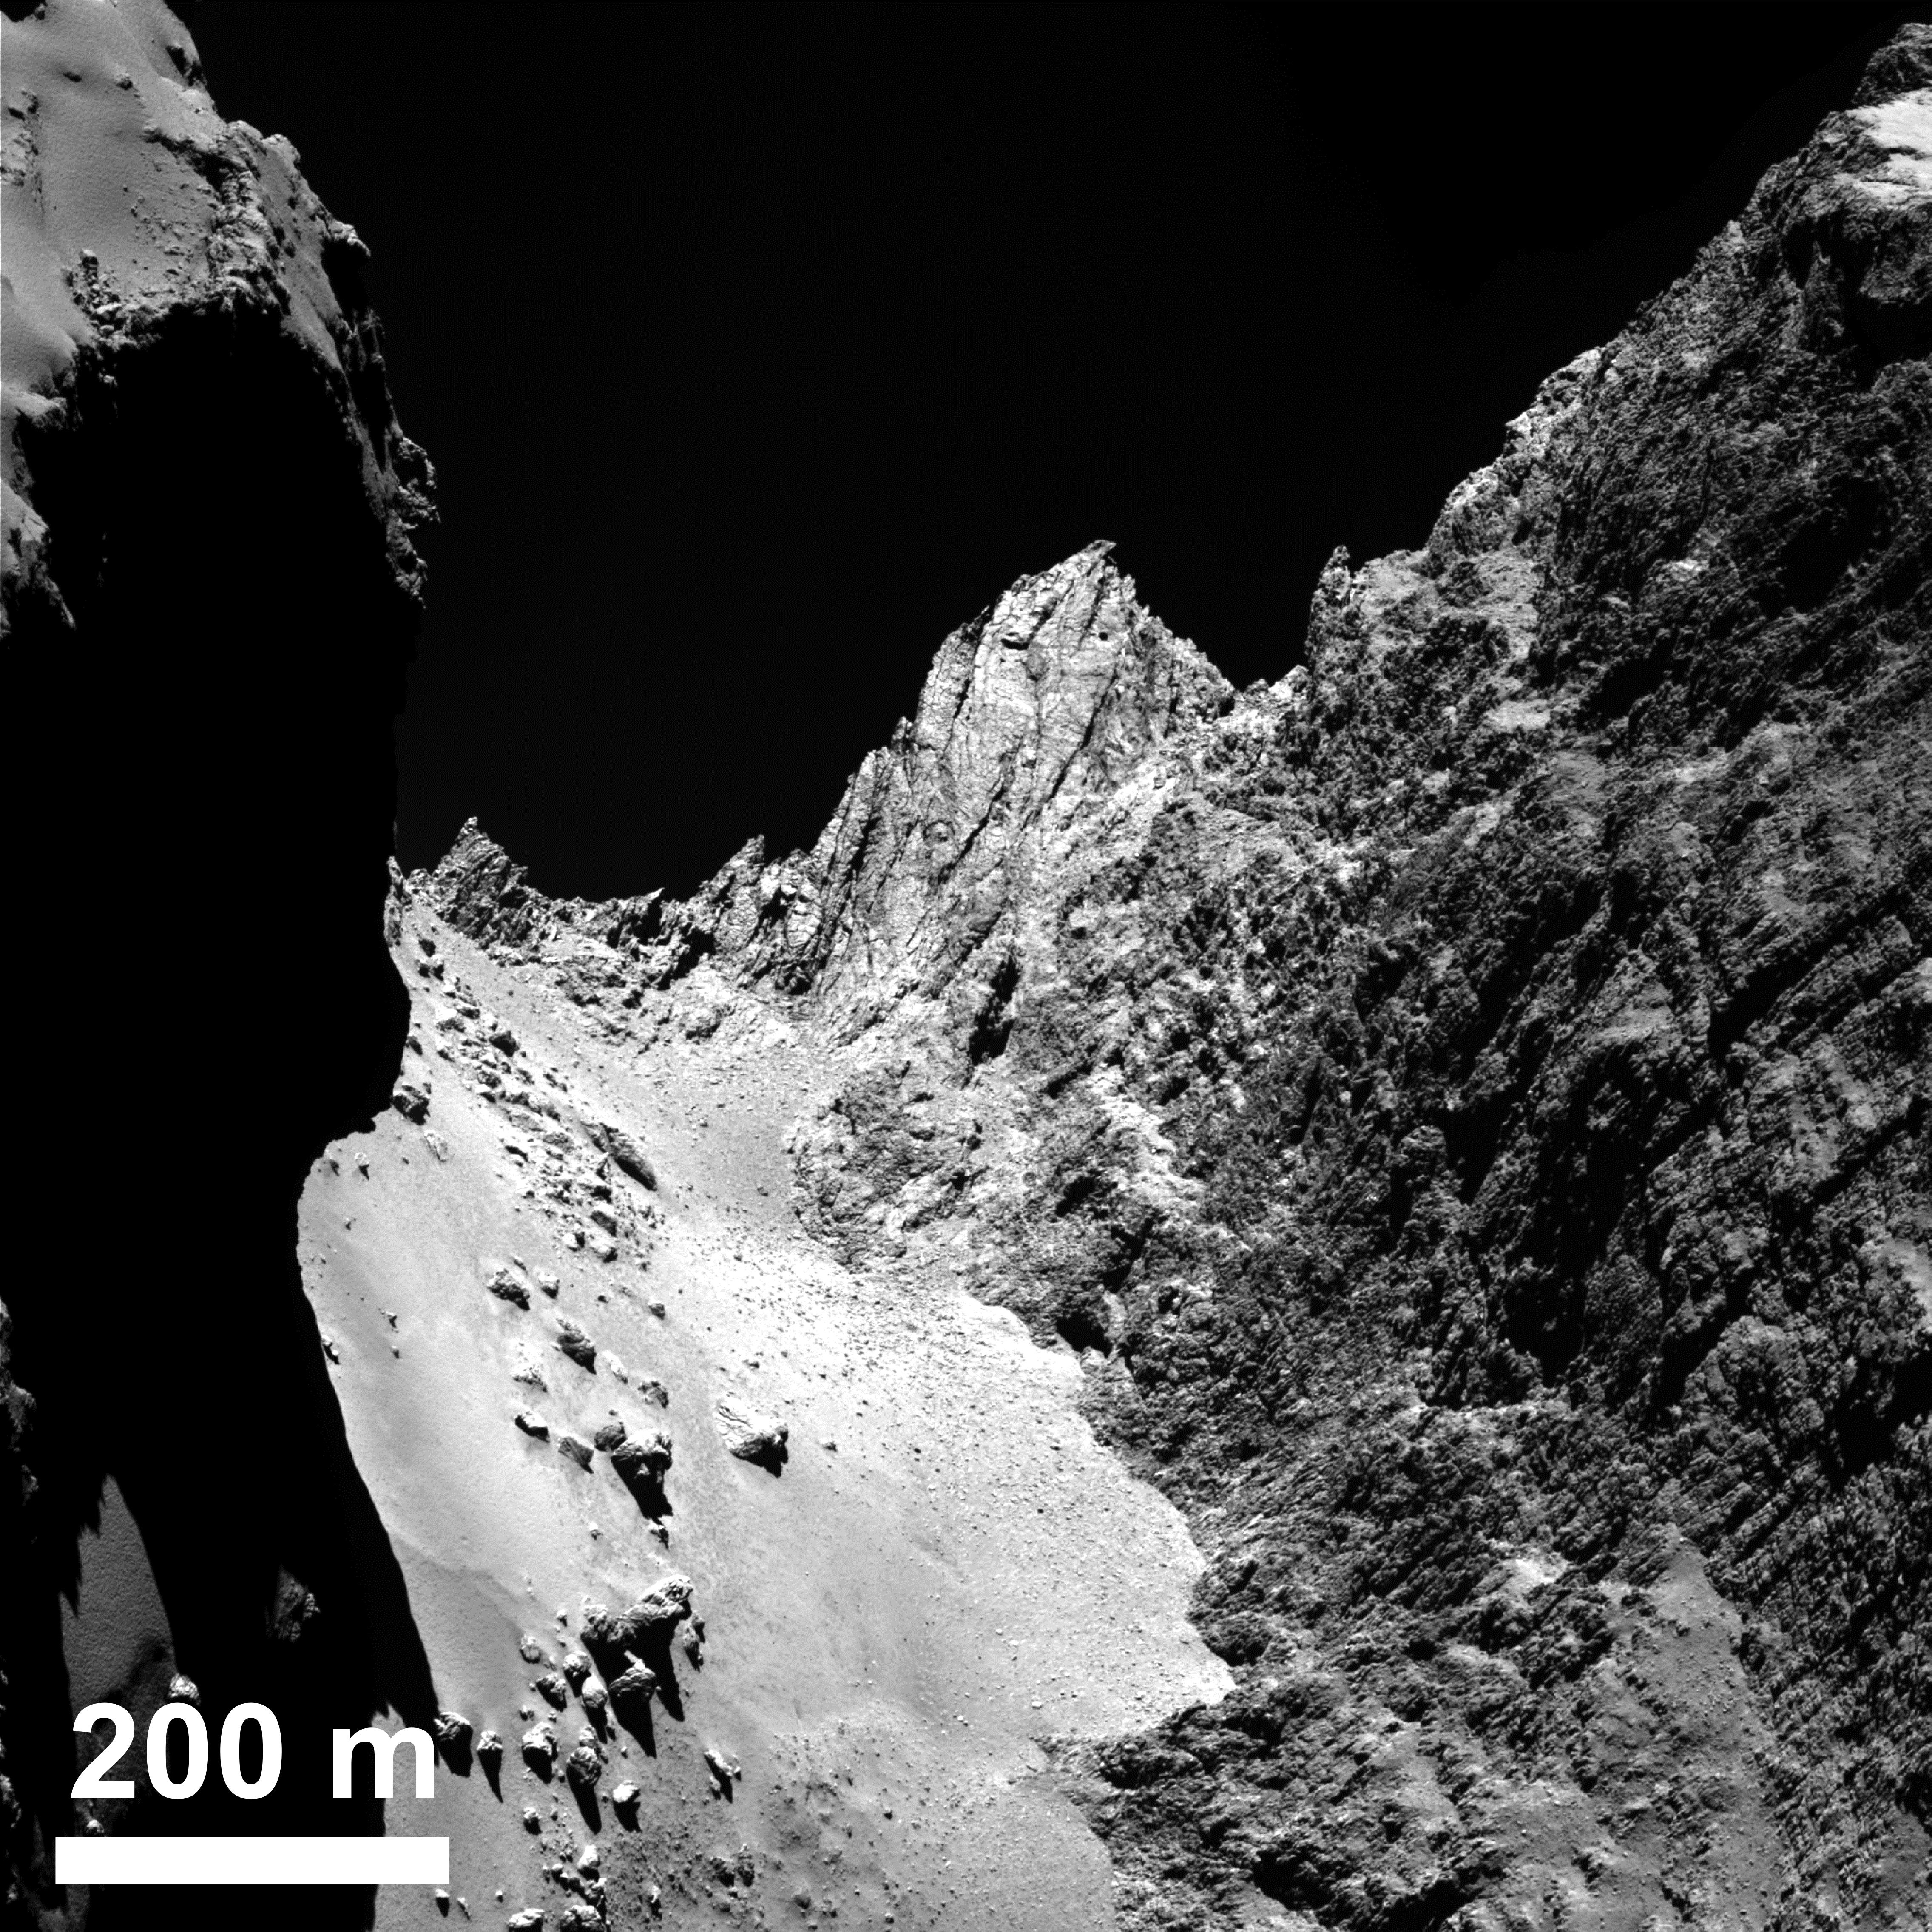 The boulder-strewn, smooth Hapi region in Comet 67P/Churyumov-Gerasimenko's neck, with the Hathor cliff face to the right.  Credits: ESA/Rosetta/MPS for OSIRIS Team MPS/UPD/LAM/IAA/SSO/INTA/UPM/DASP/IDA